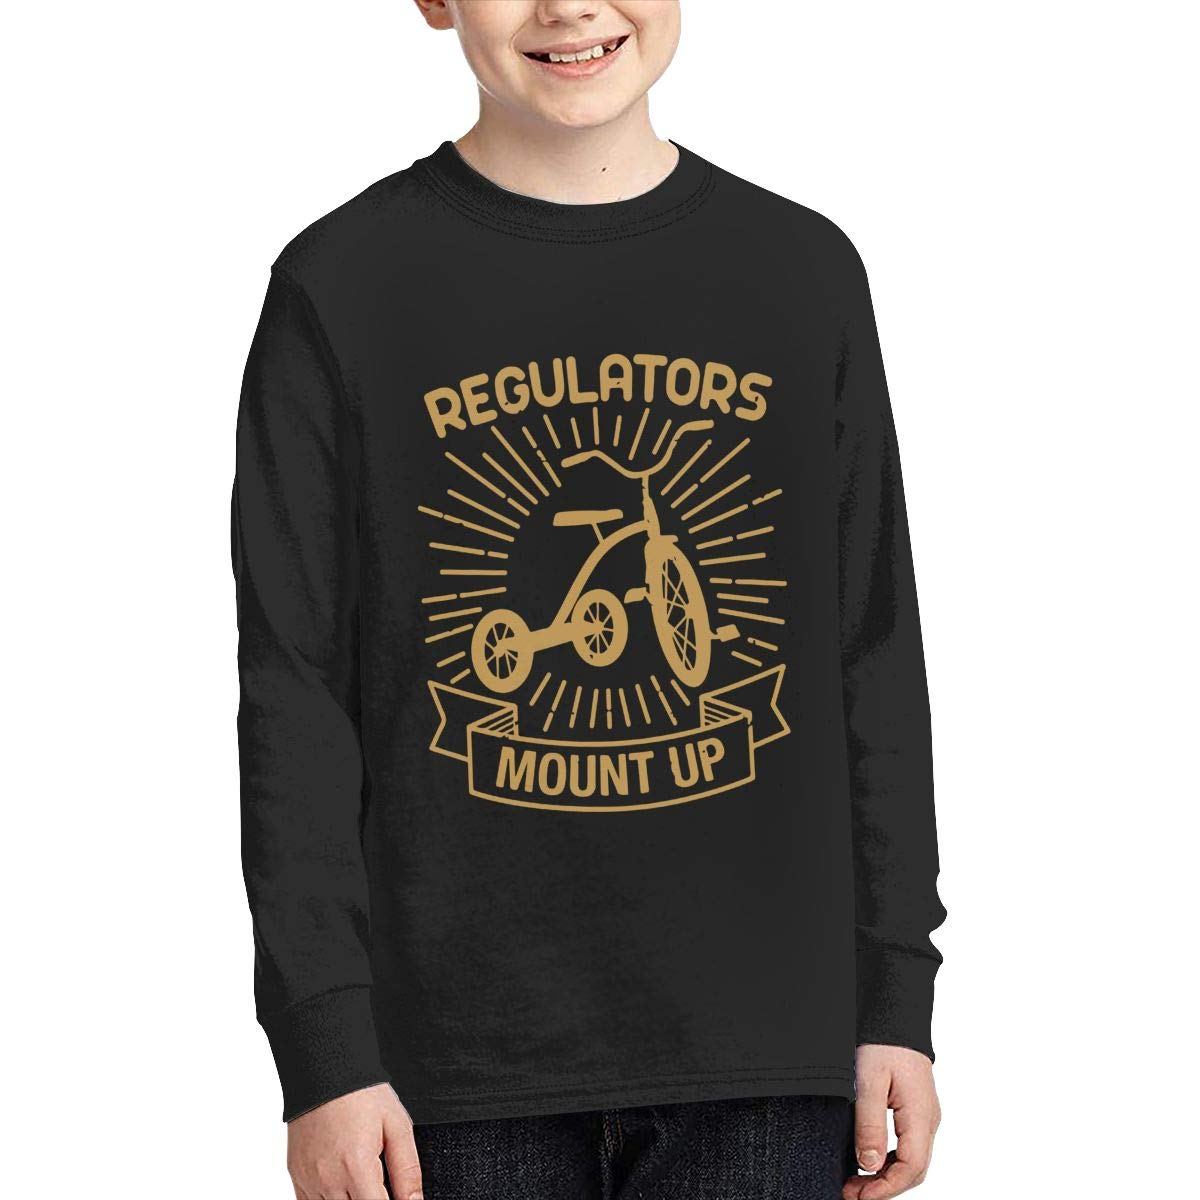 Regulators Mount Up Bicycle Youth Boy Girl Athletic Pullover Sweatshirt Funny Shirt